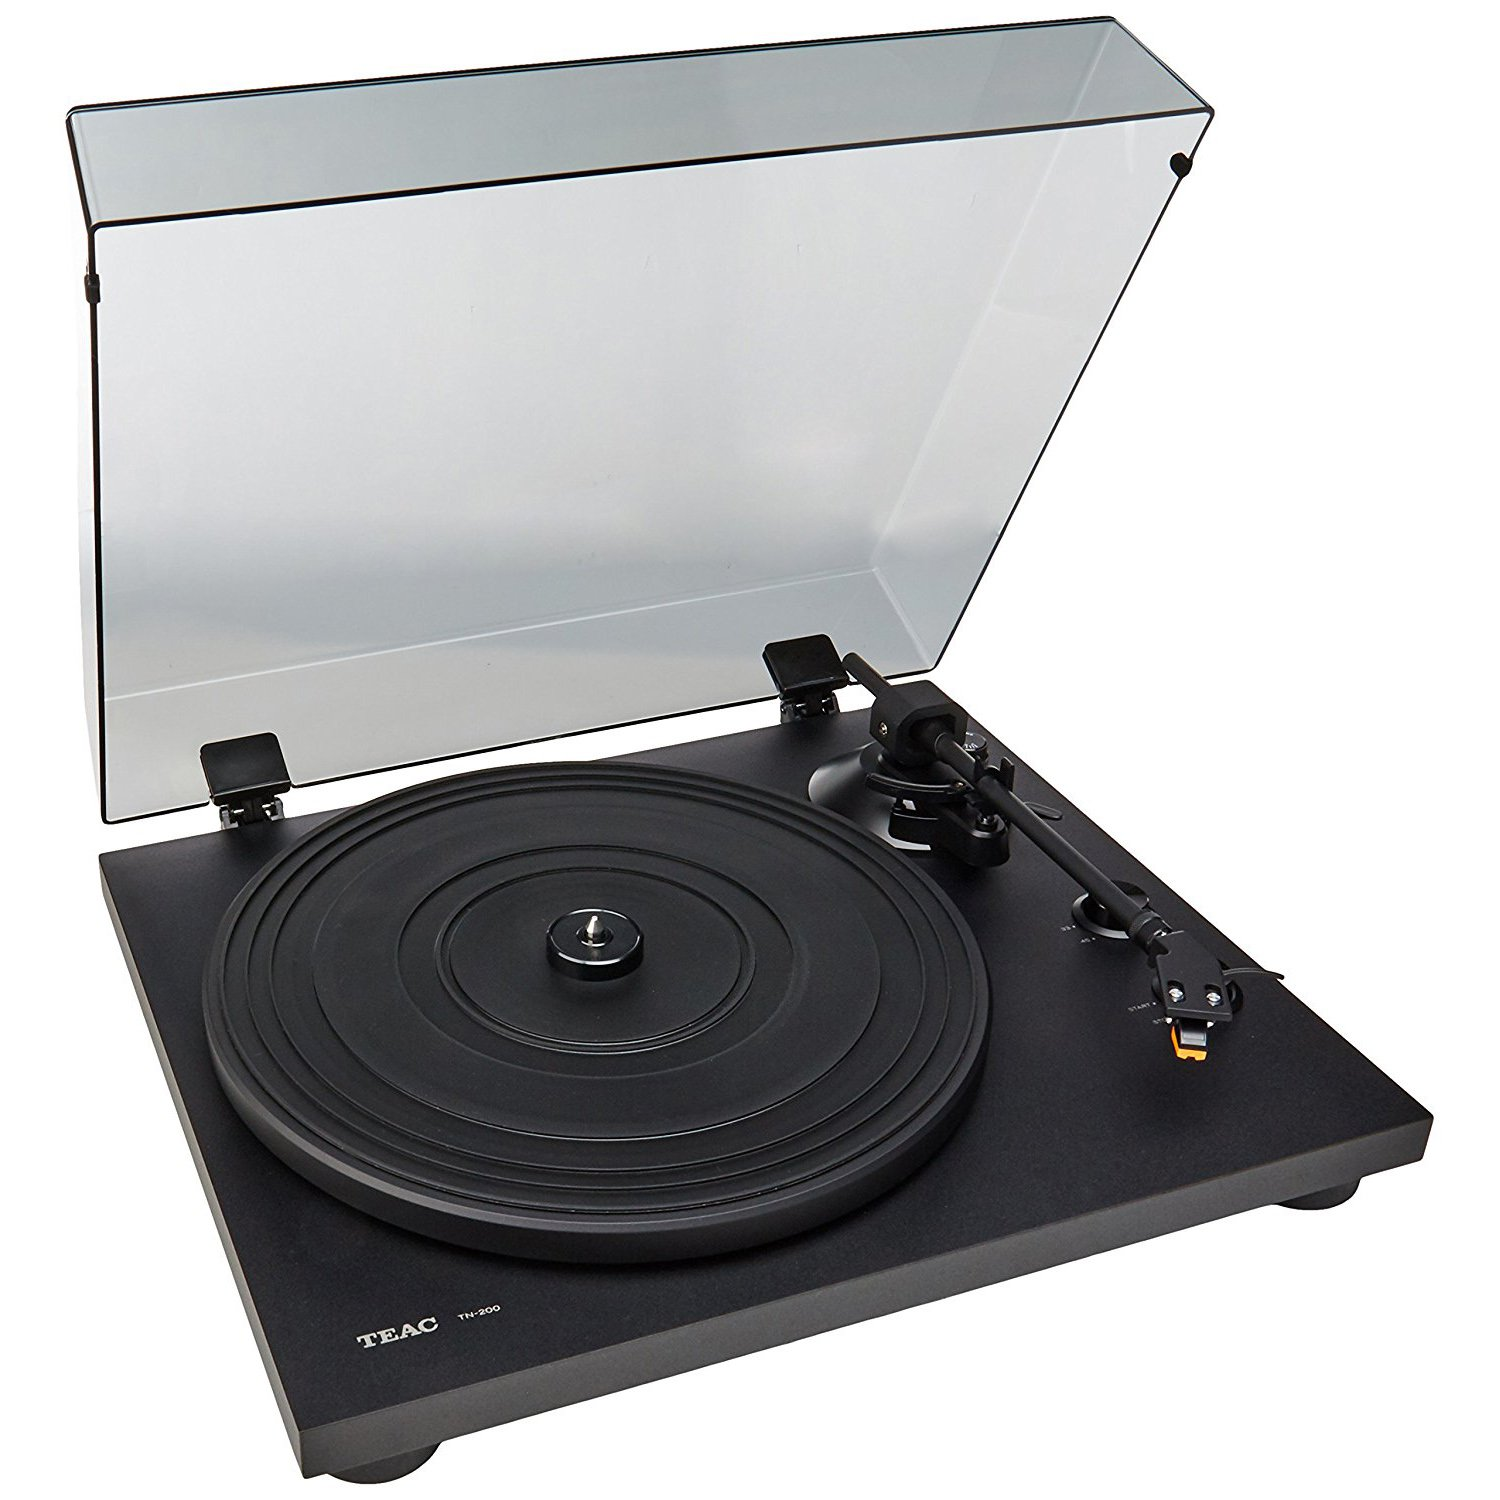 Teac TN-200-B 2-Speed Analog Turntable, Black by TEAC